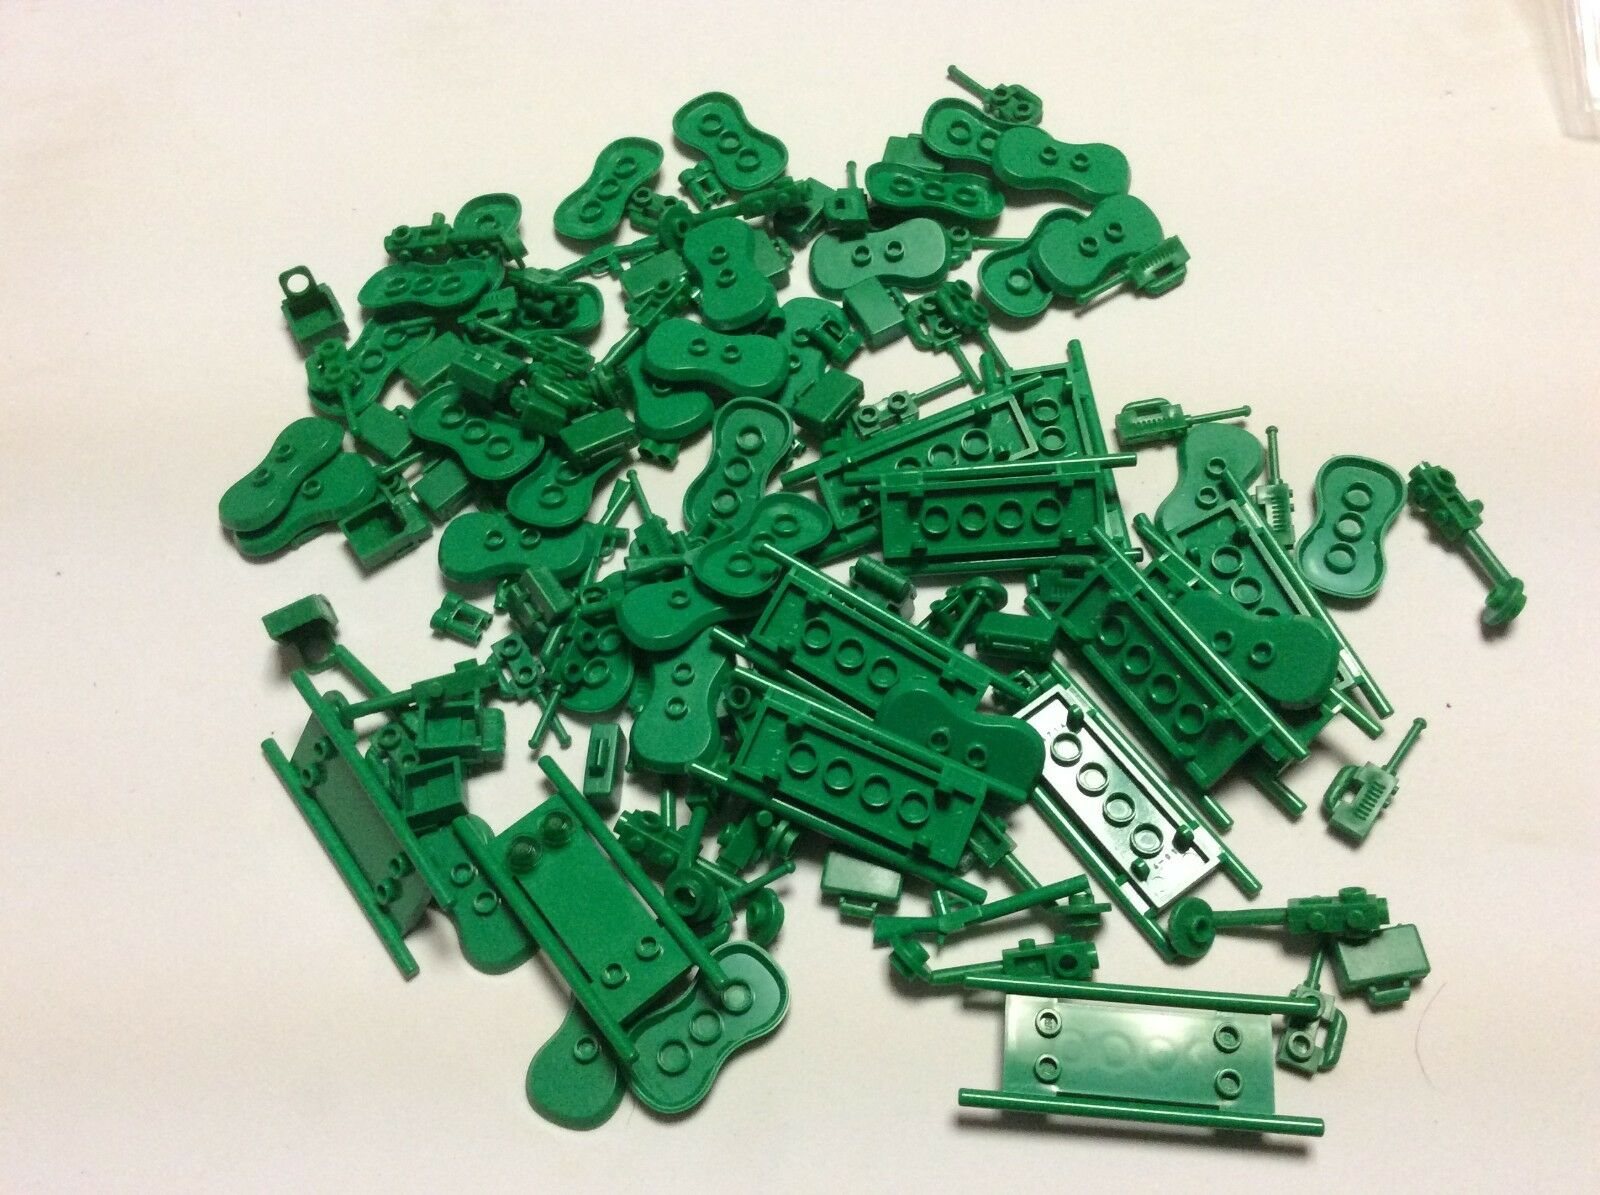 LEGO Lot Lot Lot 4 Ounces Toy Story Army Minifigure minifig Accessories Soldiers Q462M 185fb1